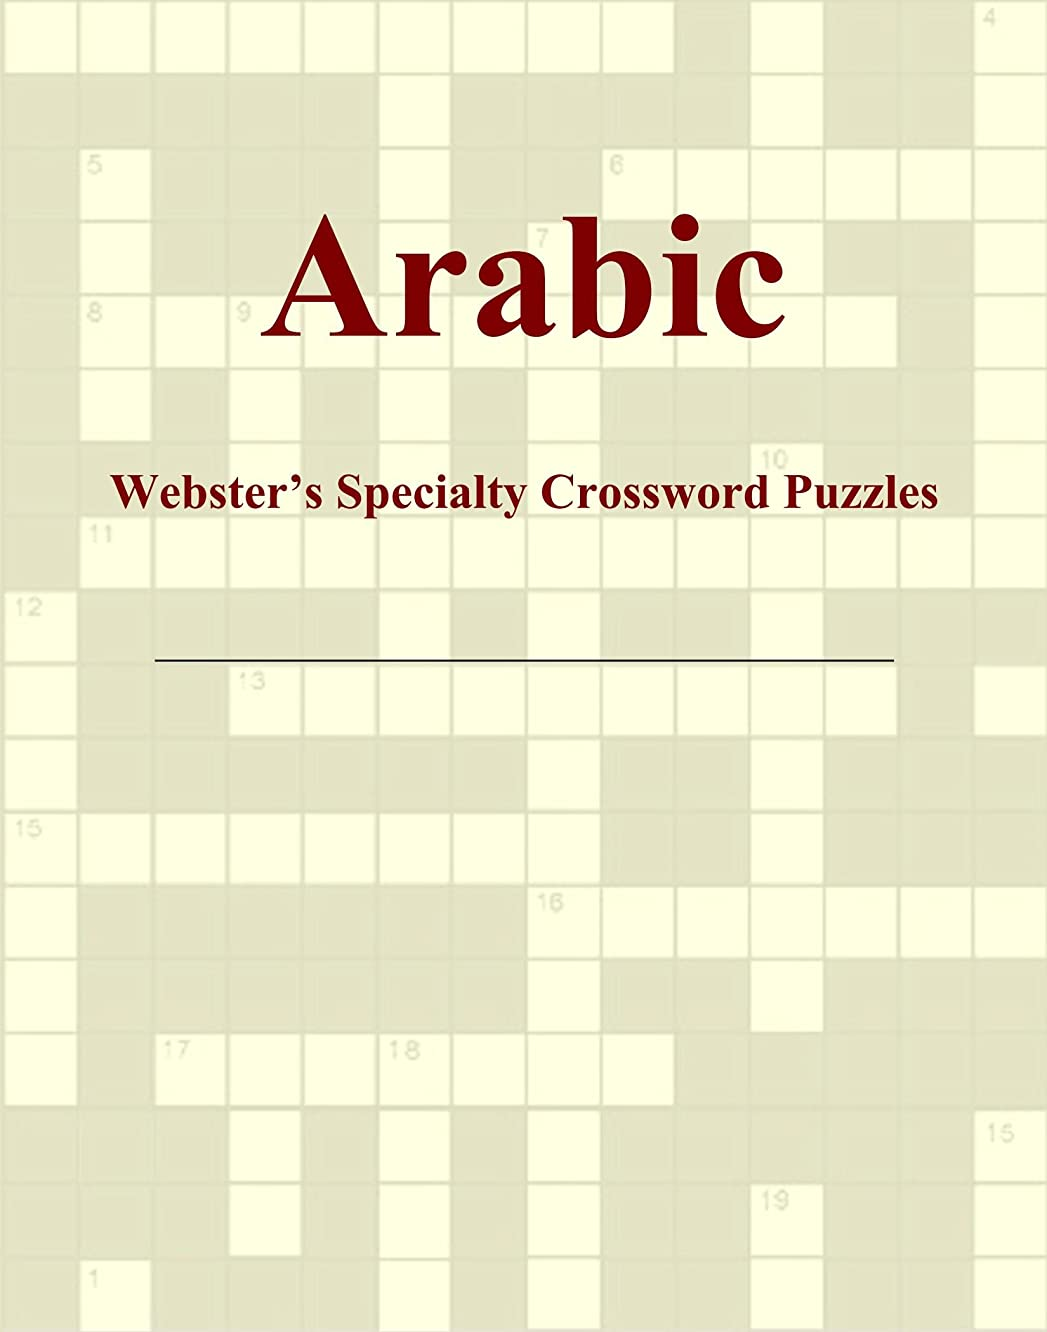 Arabic - Webster's Specialty Crossword Puzzles